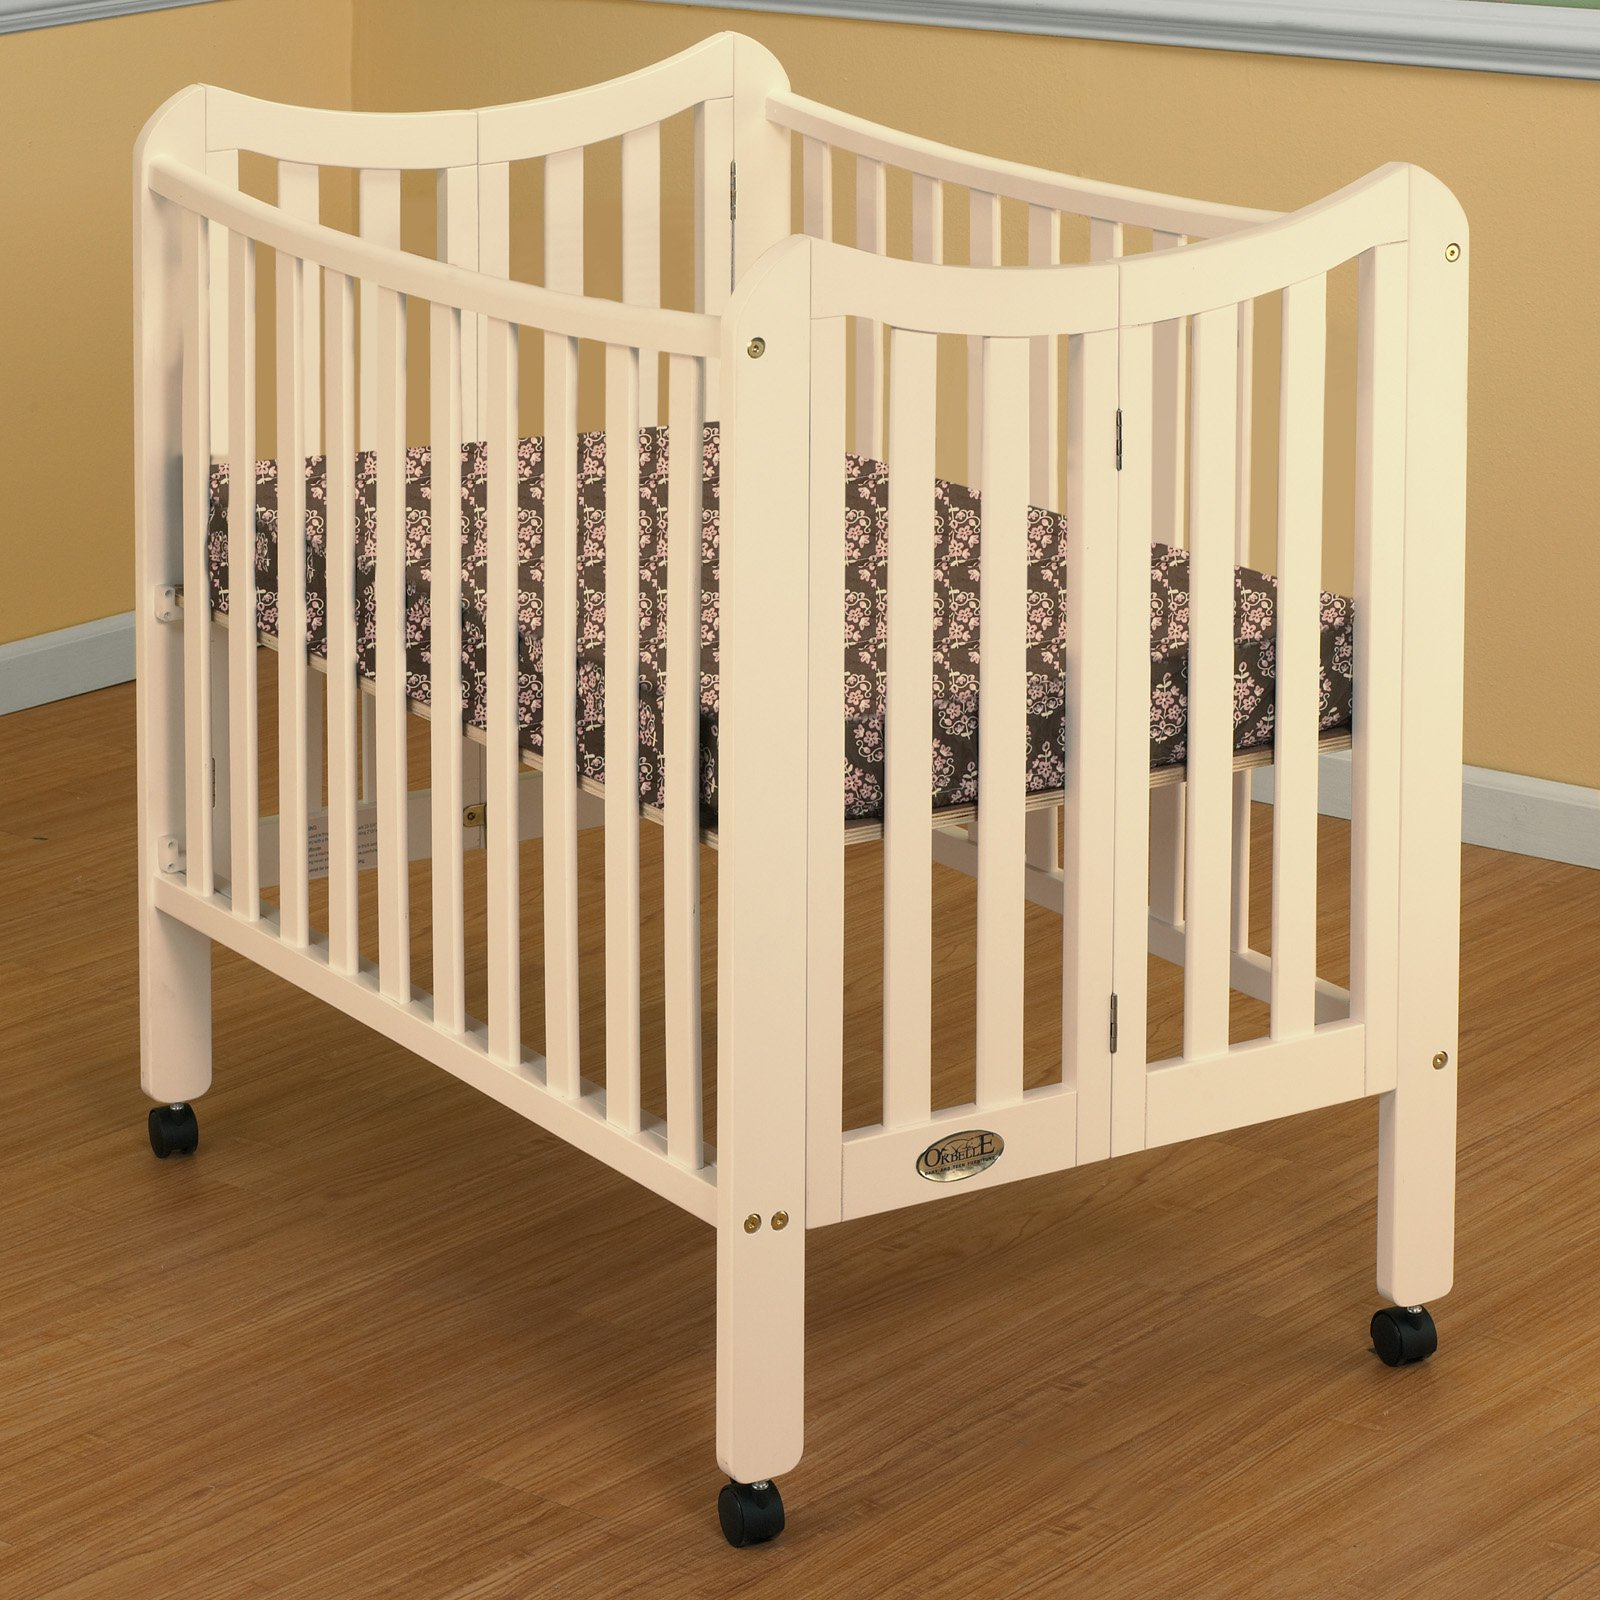 Orbelle Tian Two Level Mini Portable Crib by Orbelle